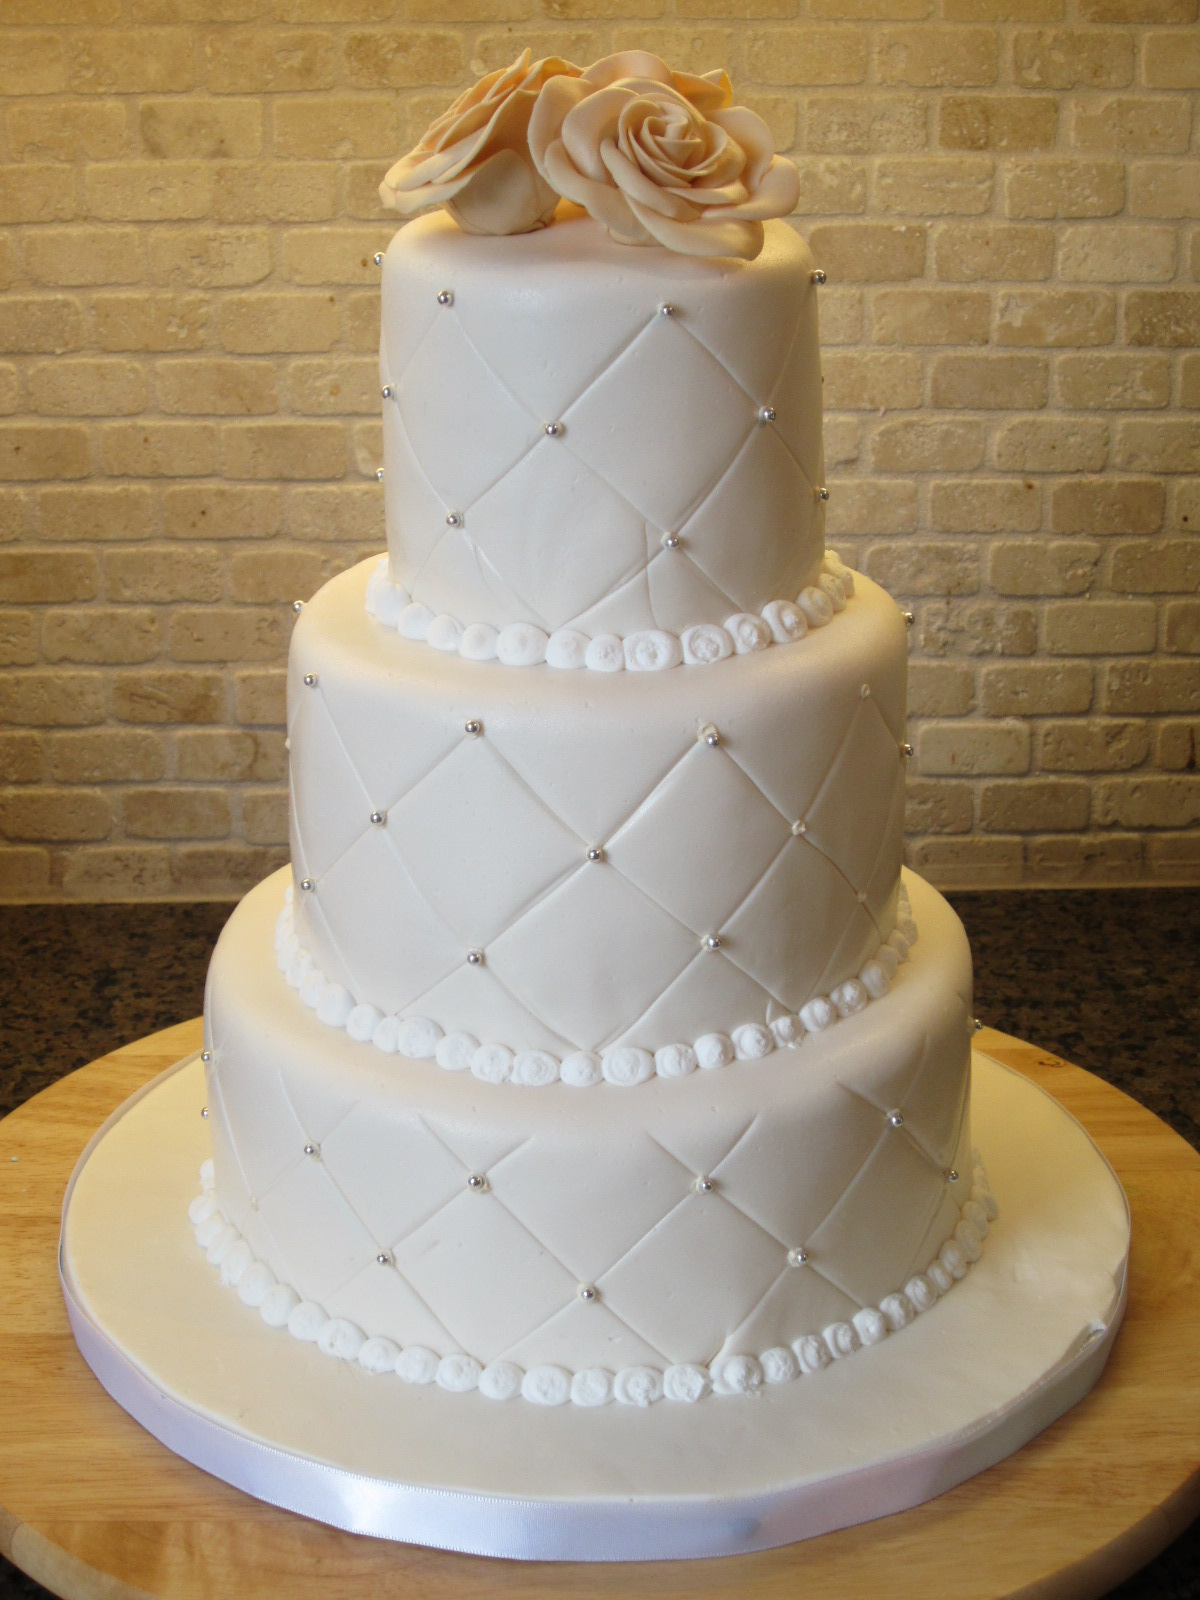 Cakes images wedding cake hd wallpaper and background photos - Wedding Cakes Pictures To Download Wedding Cakes Px Hdwallsource